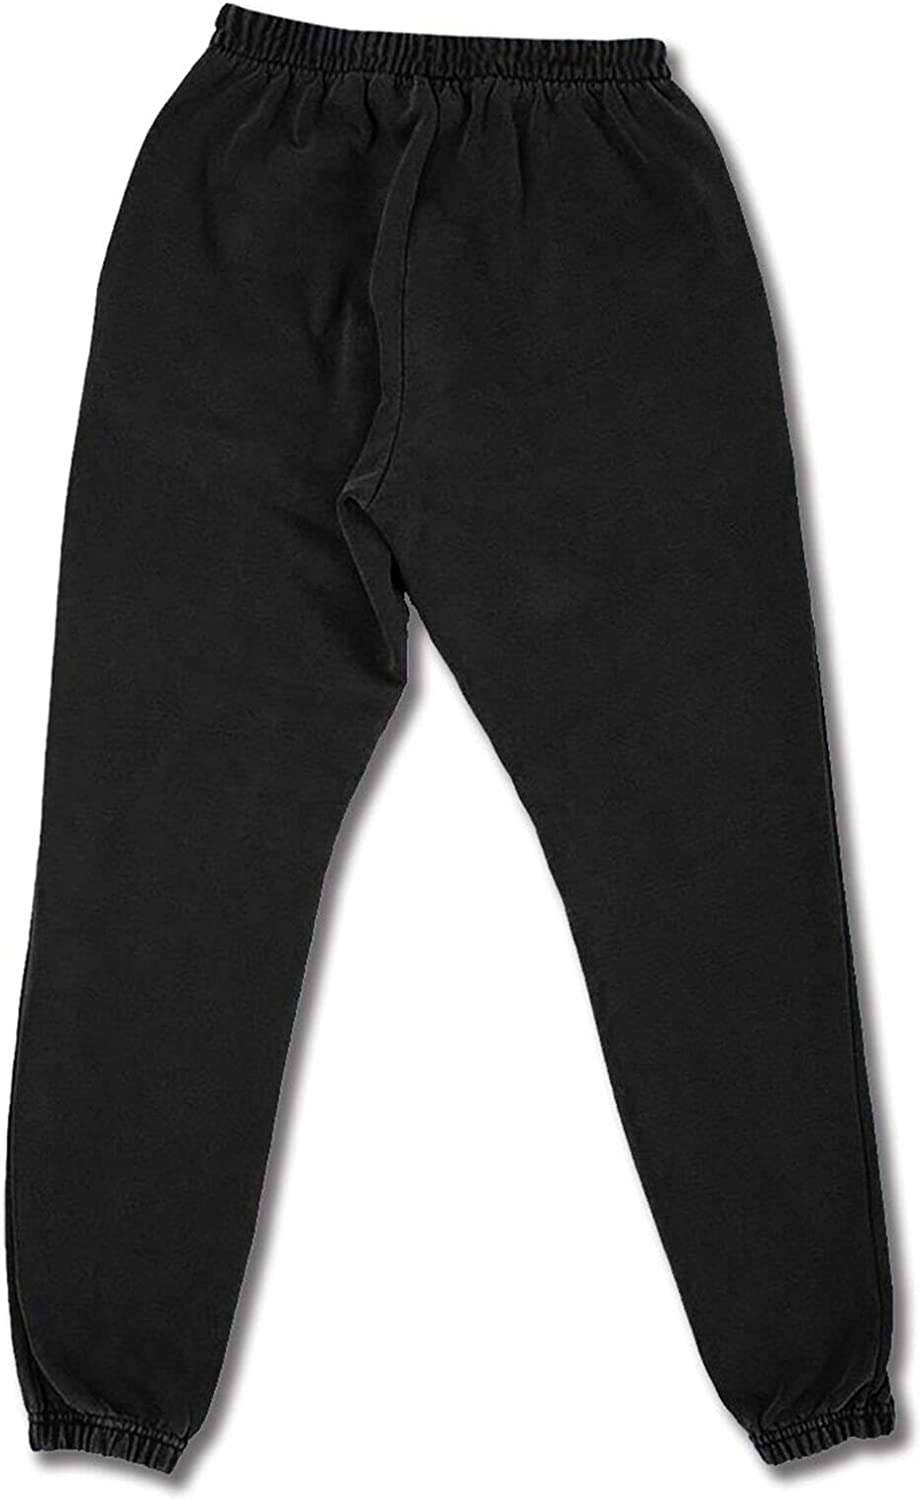 Mens Jogger Sweatpants Let's Party Music Note Lightweight Workout Athletic Joggers Pants Trousers